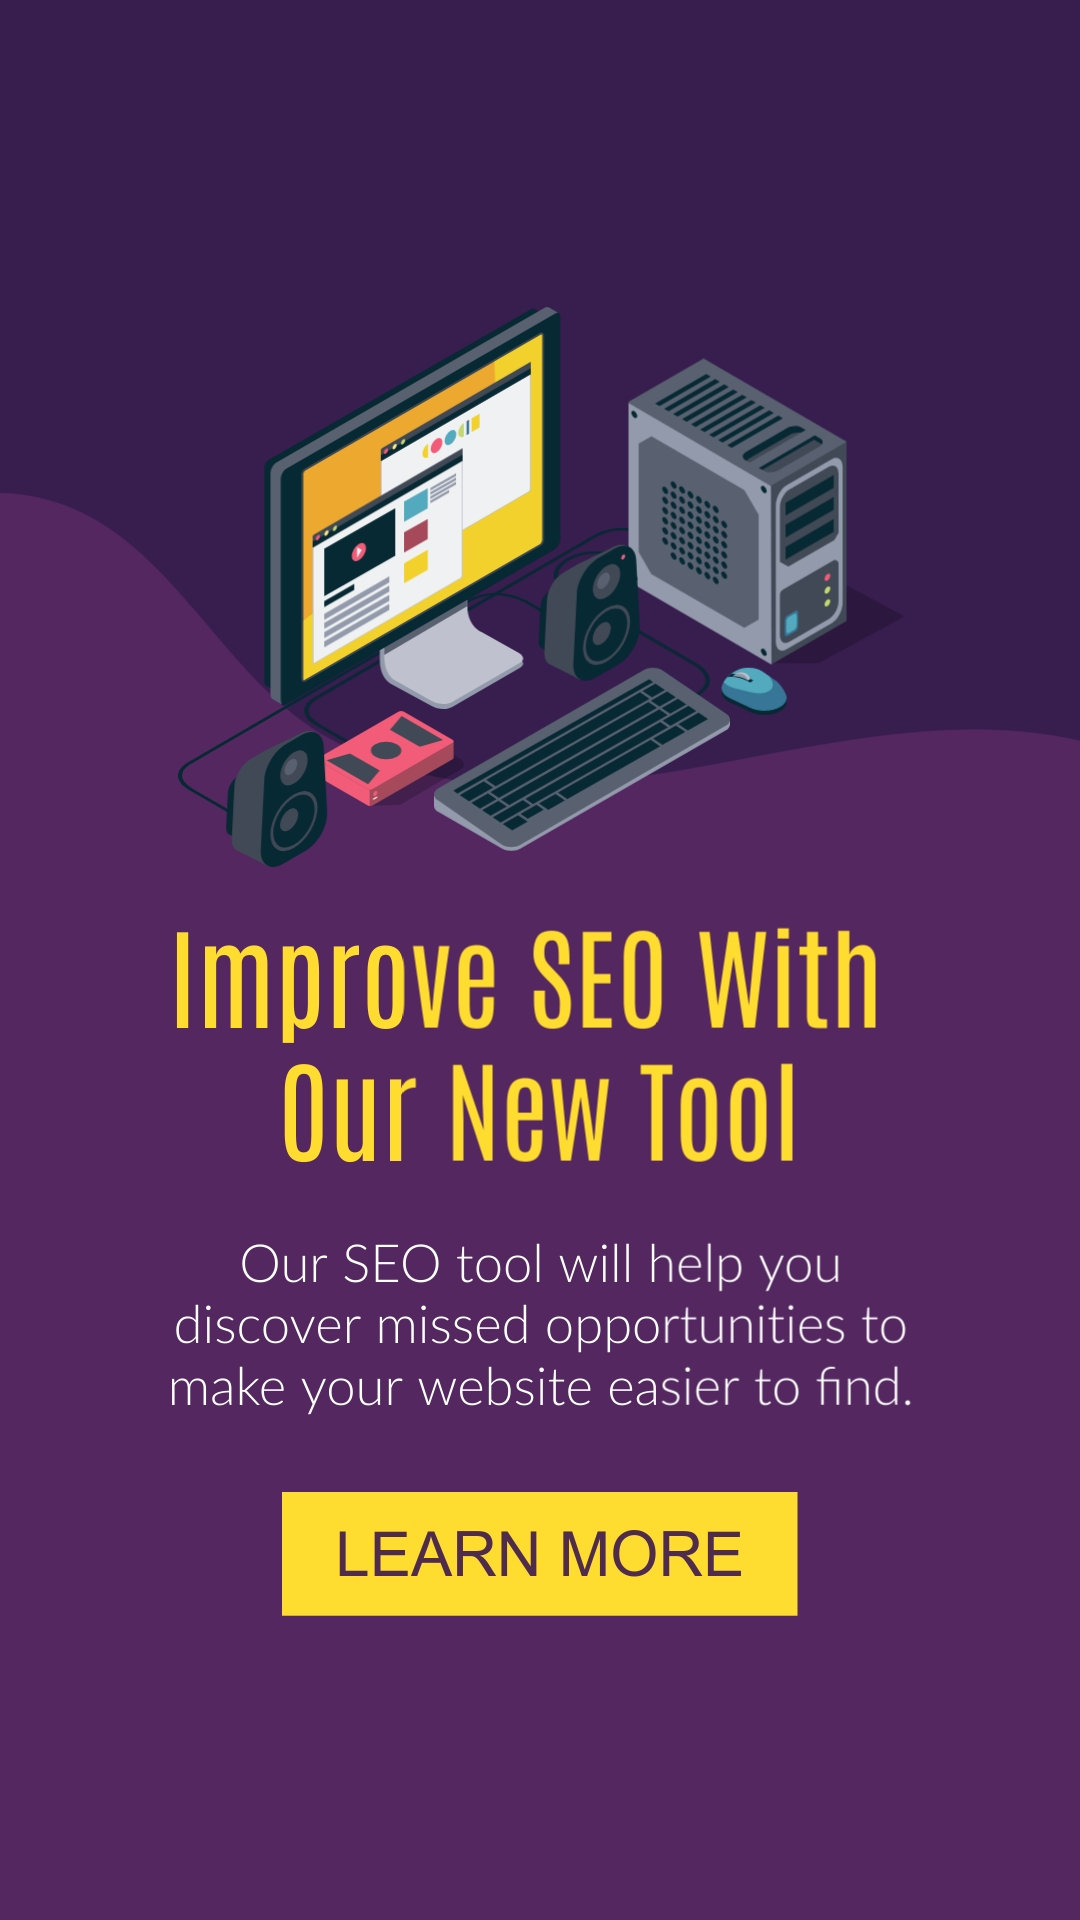 Improve SEO With New Tool Vertical Template